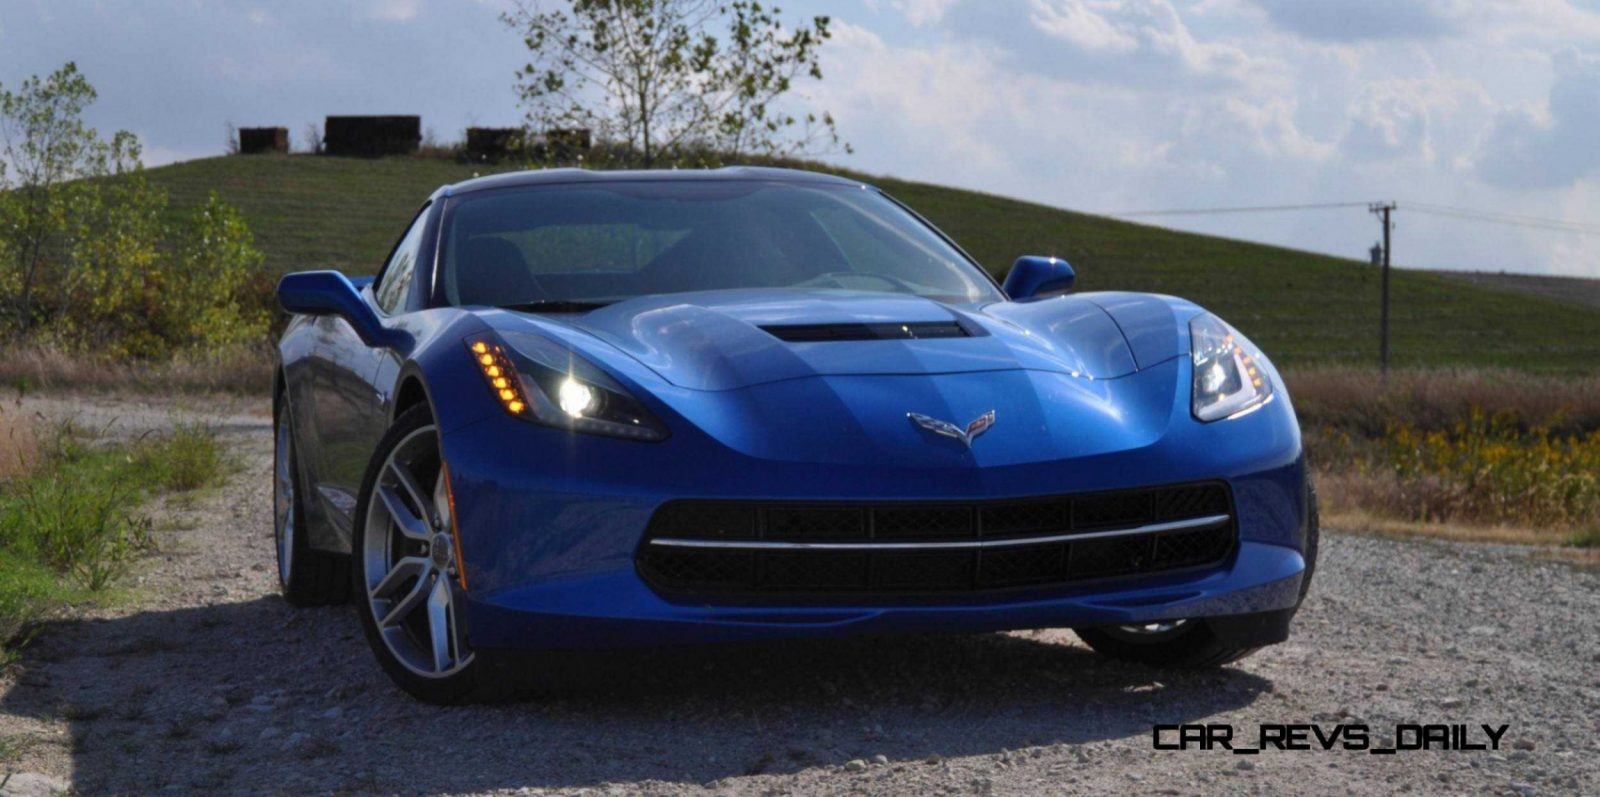 2014 Chevrolet Corvette Stingray Z51 in 102 Photos74